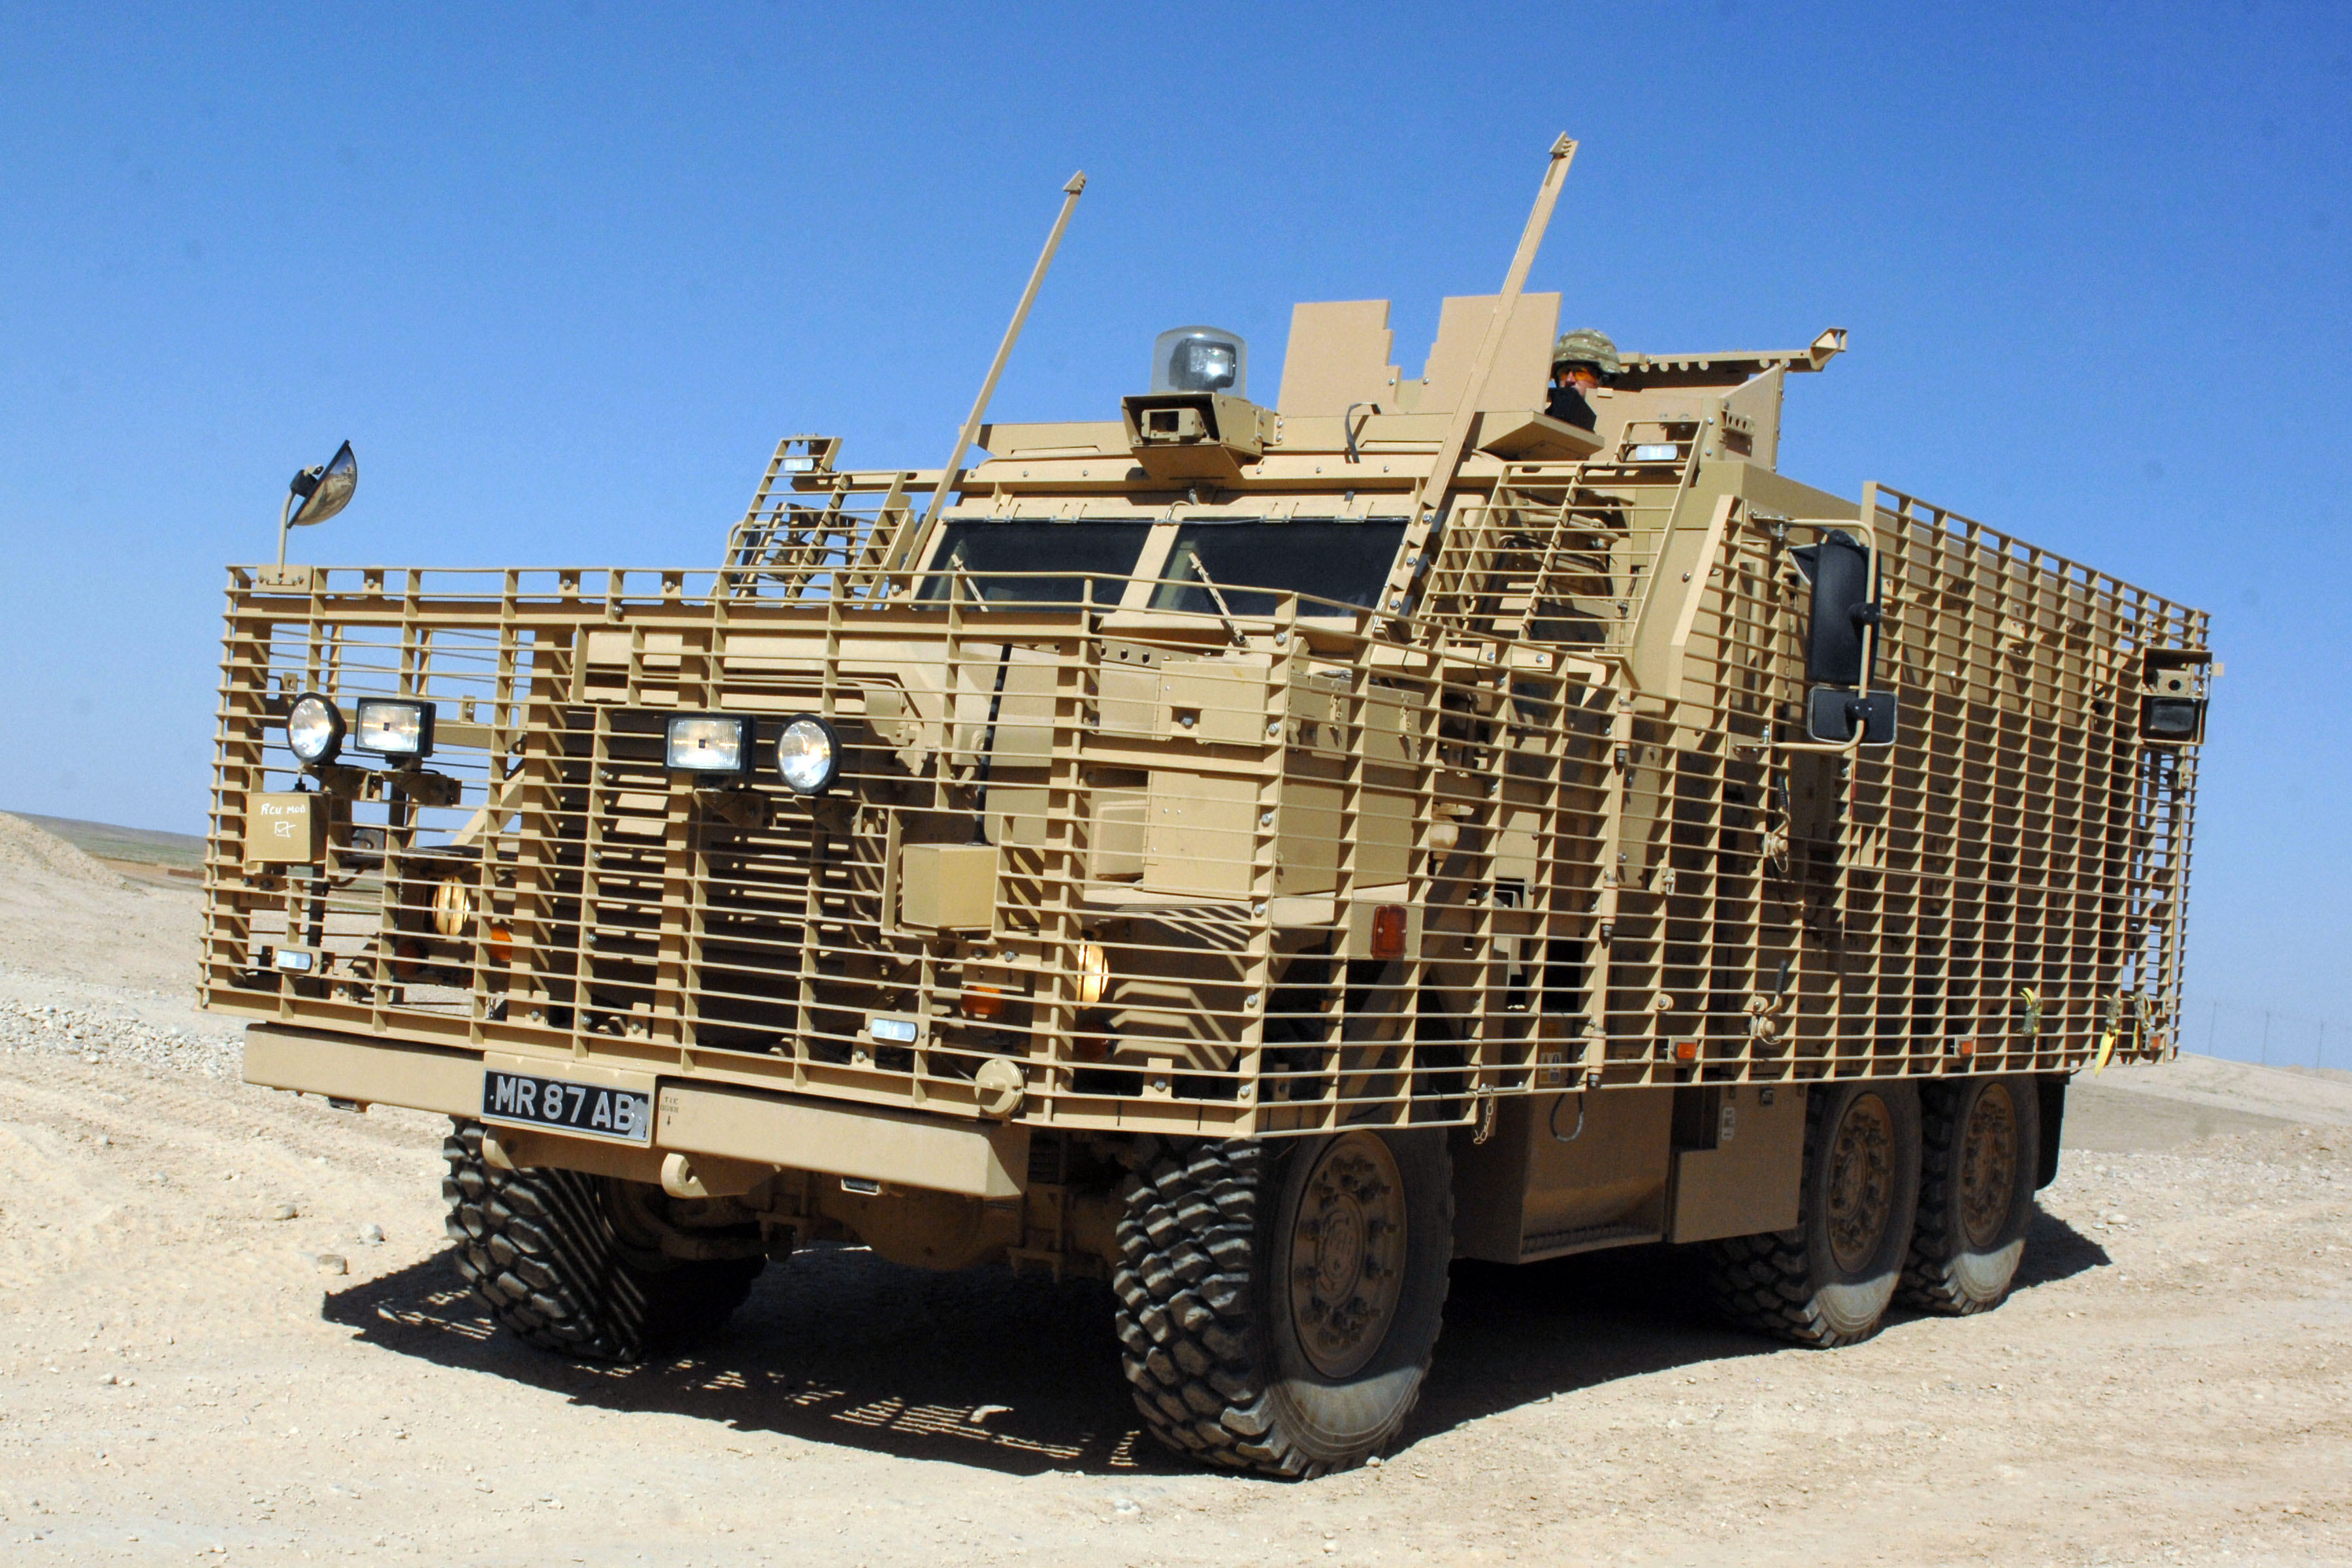 Drive A Tank >> File:Mastiff 3 Protected Patrol Vehicle in Afghanistan MOD 45155371.jpg - Wikimedia Commons